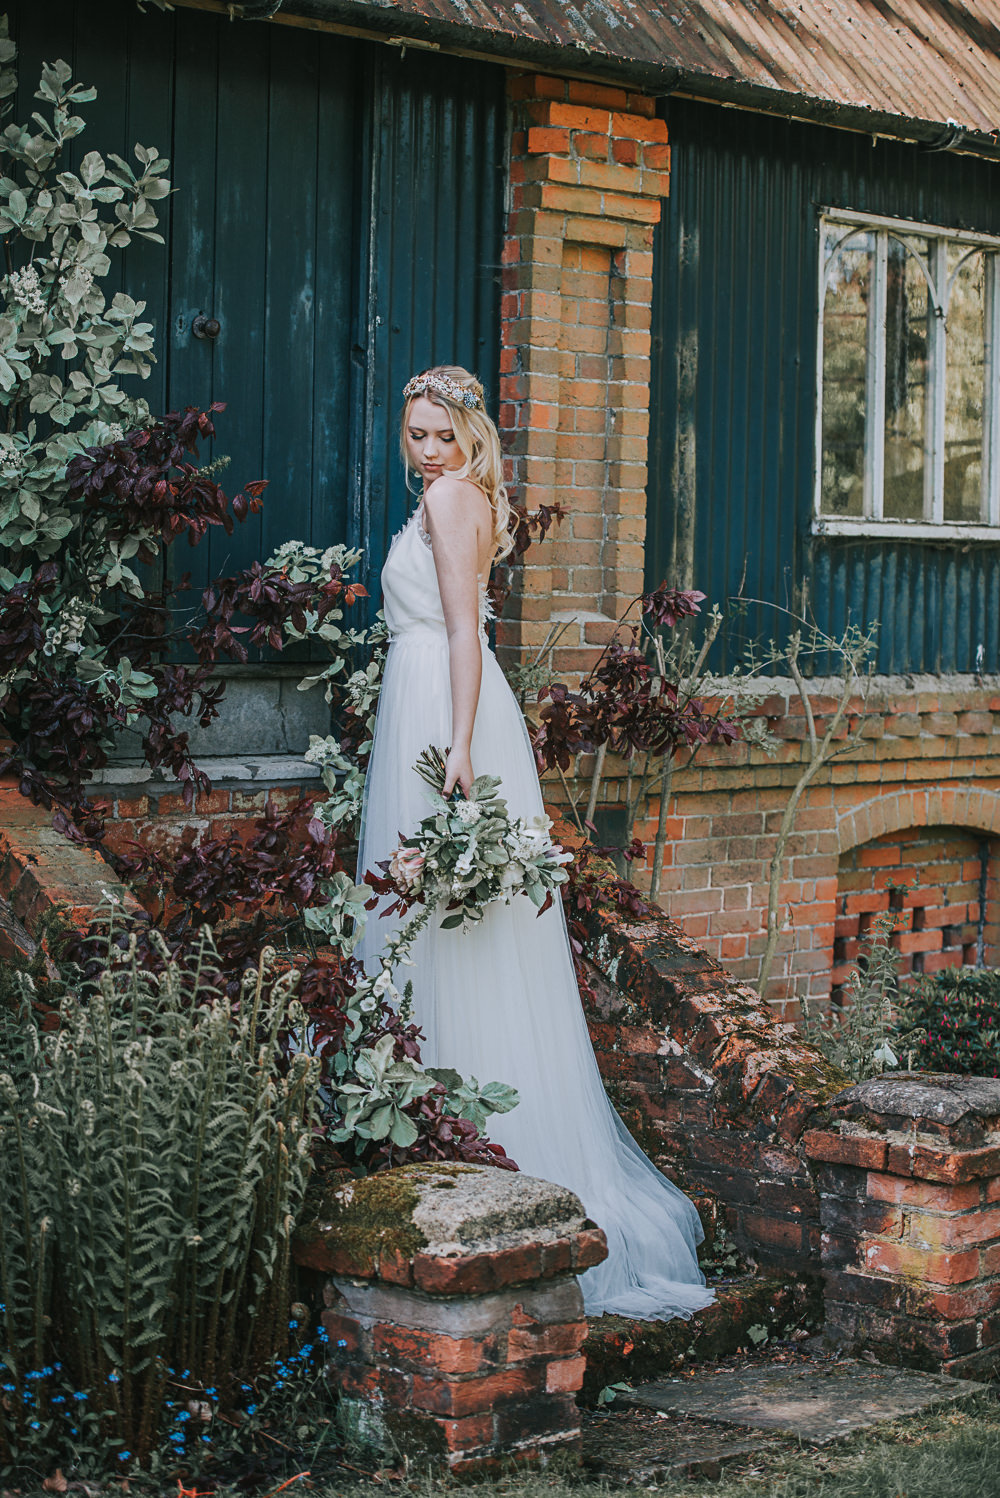 Secret Dresshouse Ethereal Bride Bridal Gown Eucalyptus Foliage Flower Florals River Romance Wedding Ideas Mindy Coe Photography